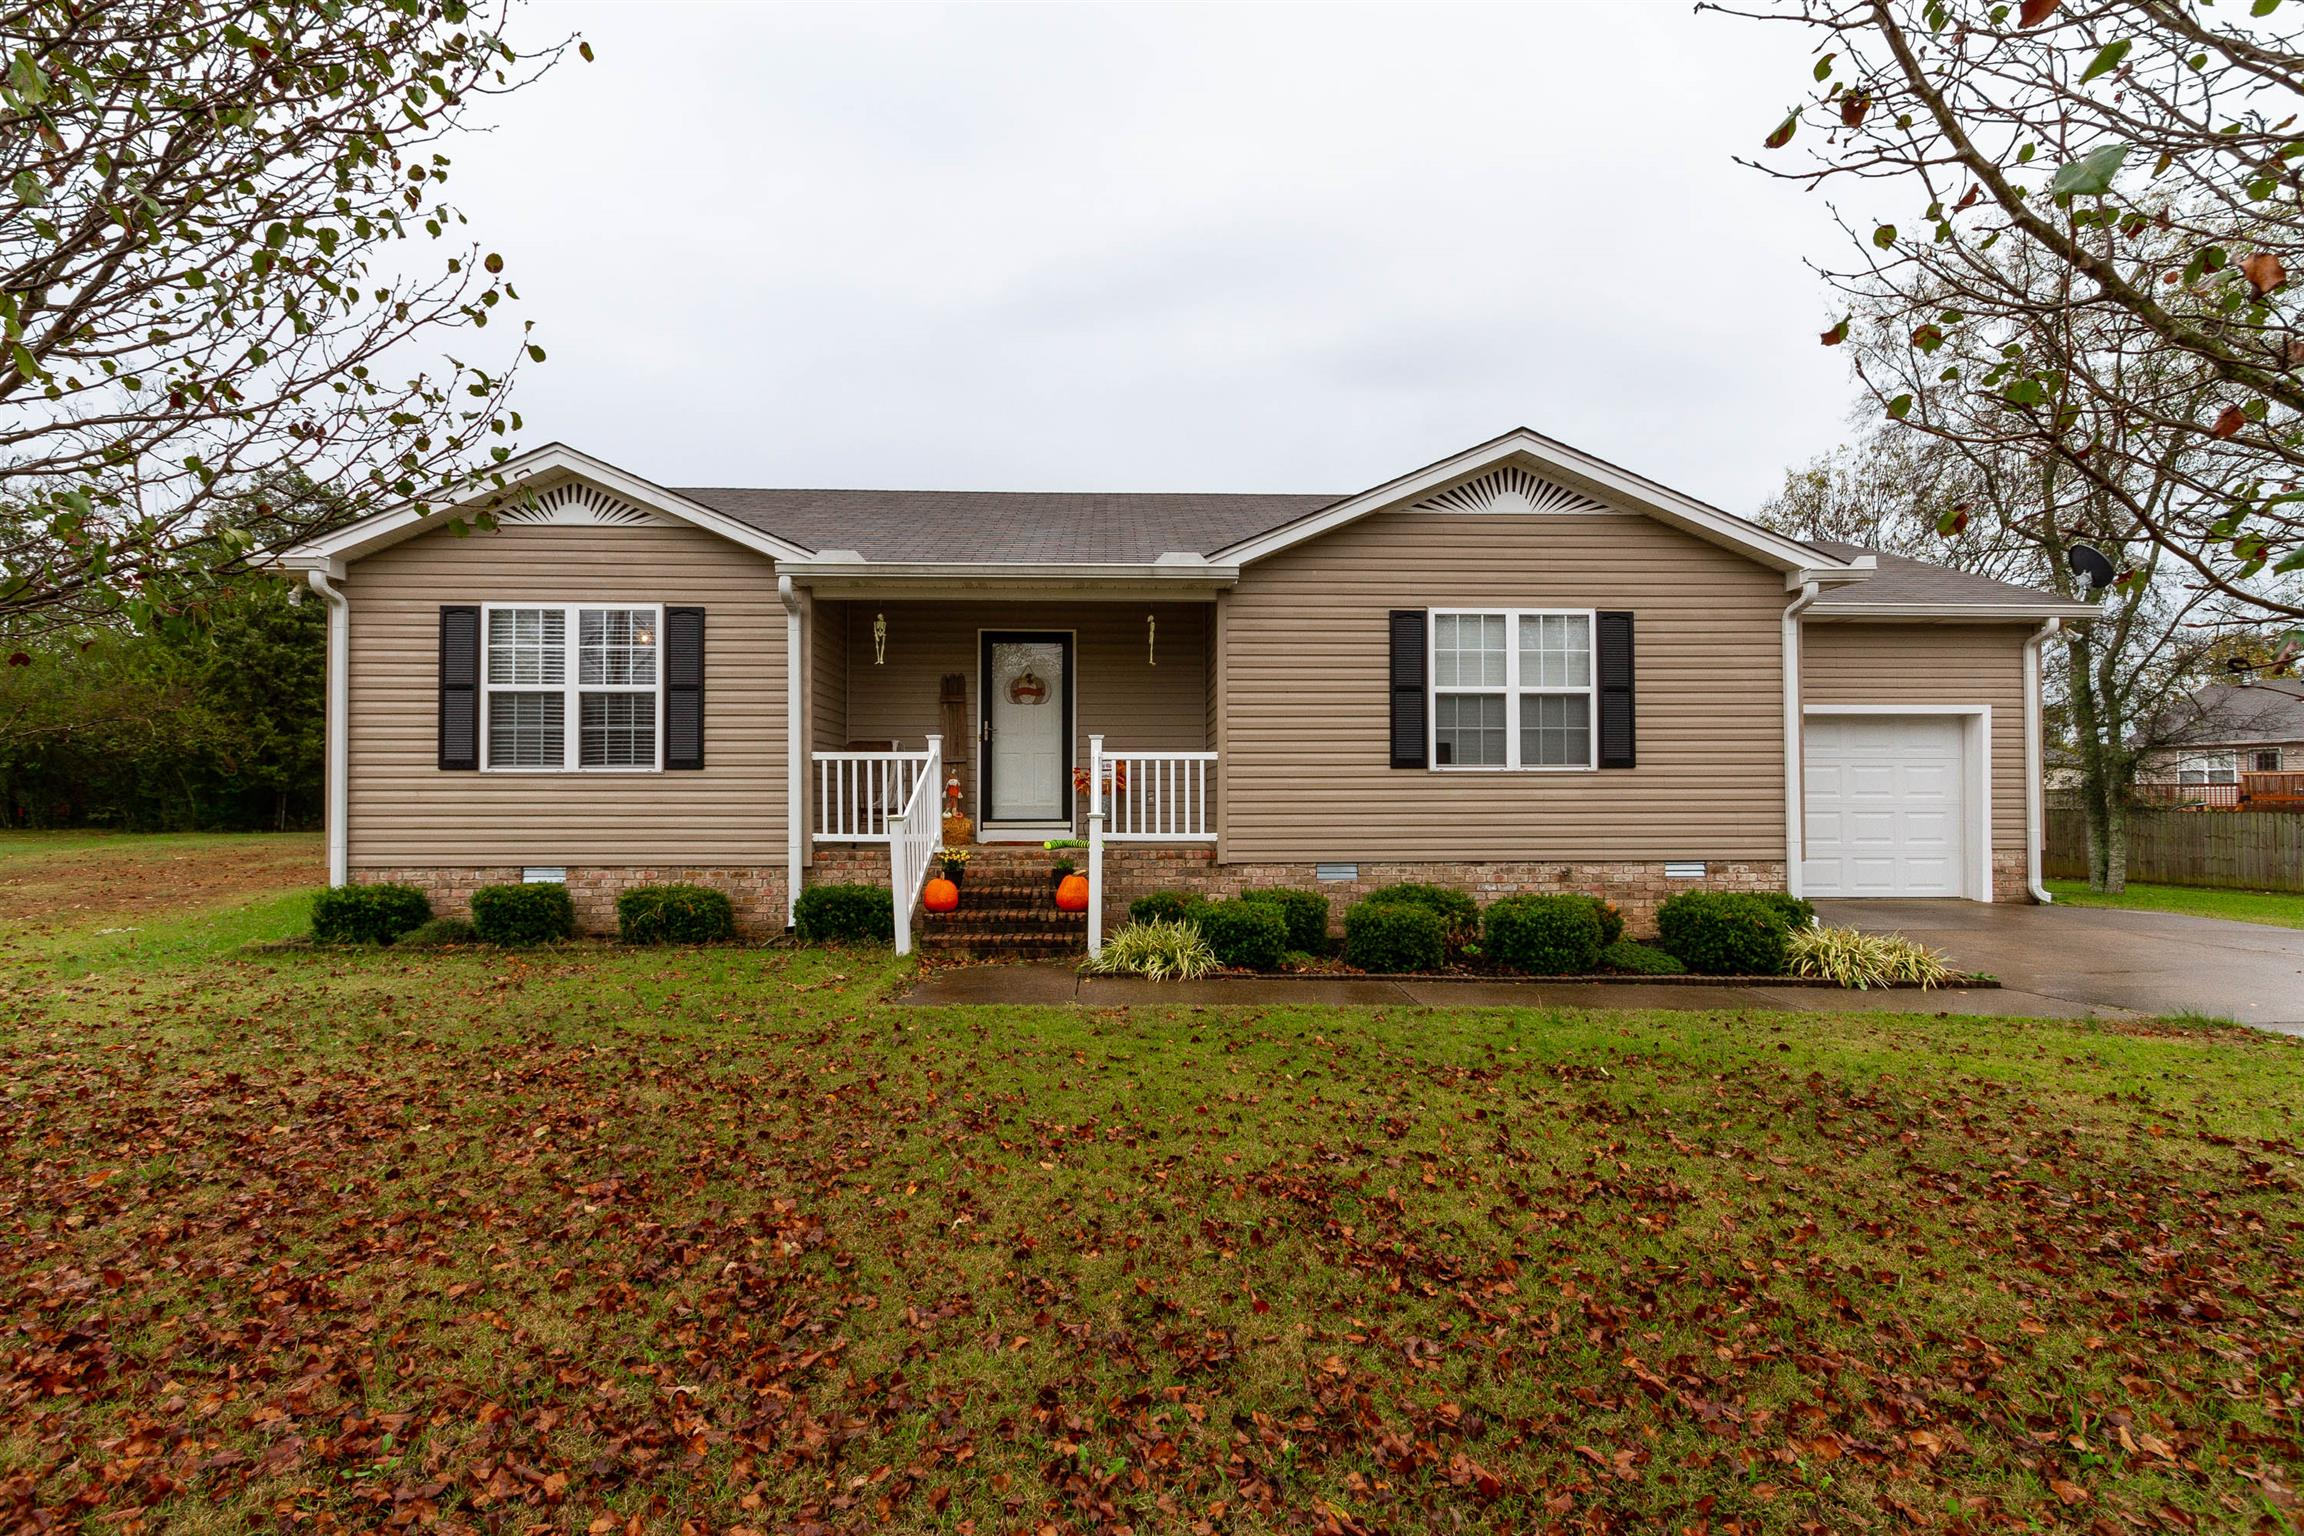 313 June Dr, Lebanon, TN 37087 - Lebanon, TN real estate listing